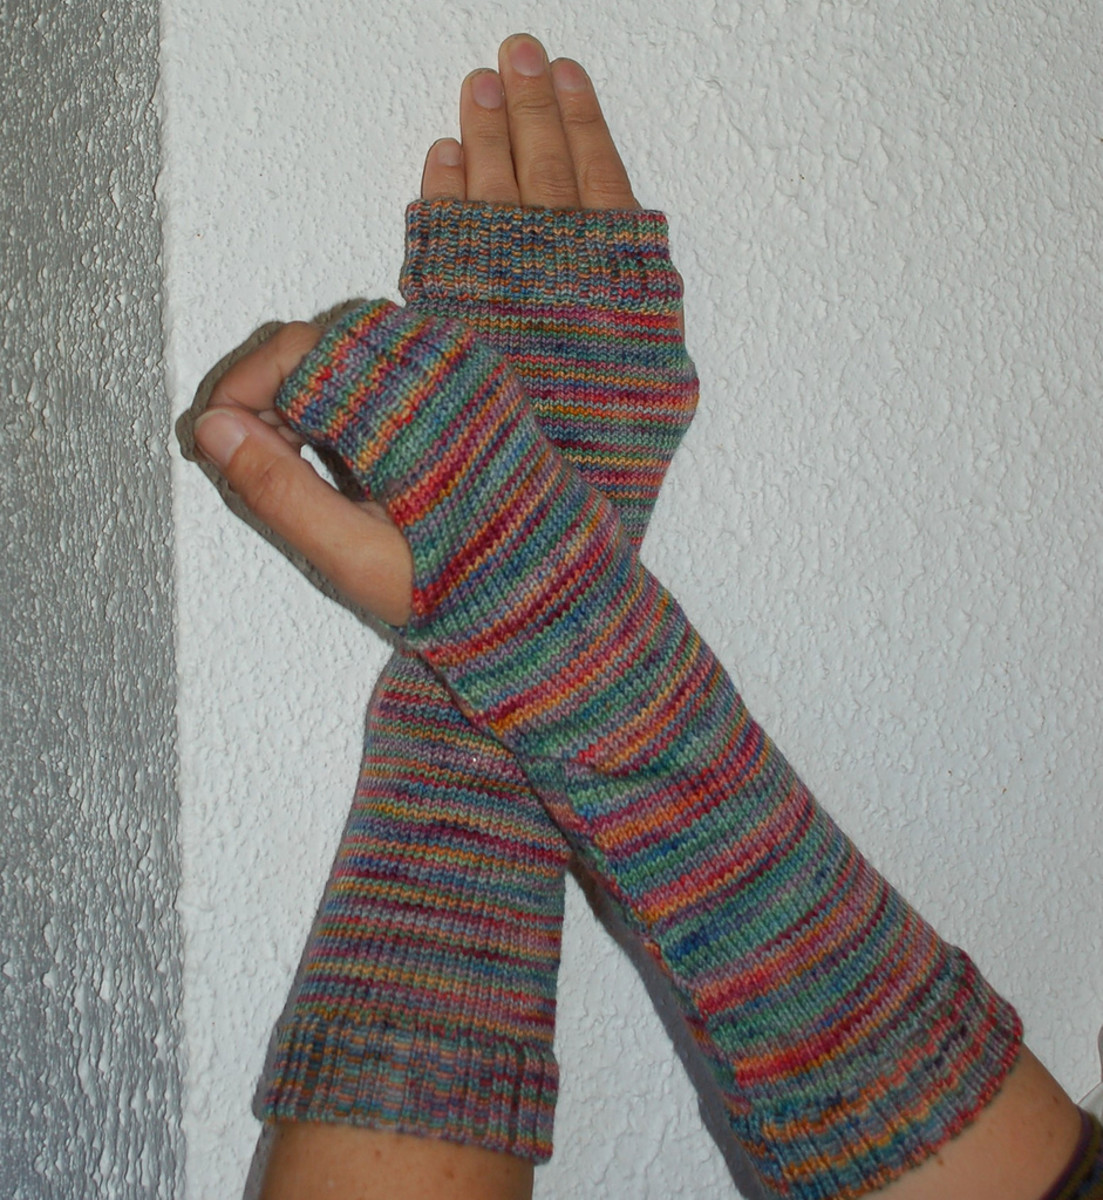 Armwarmers with fingerless gloves. CC BY 2.0, via Flickr.